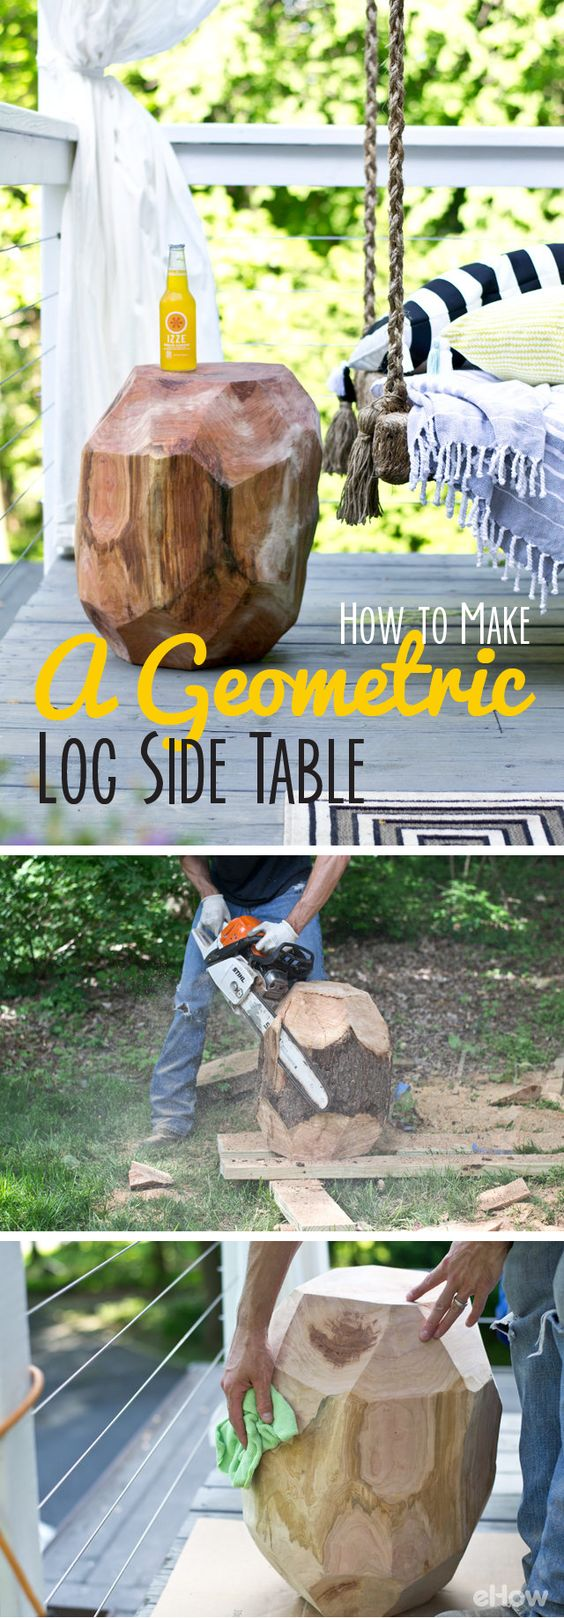 DIY Geometric Log Side Table.